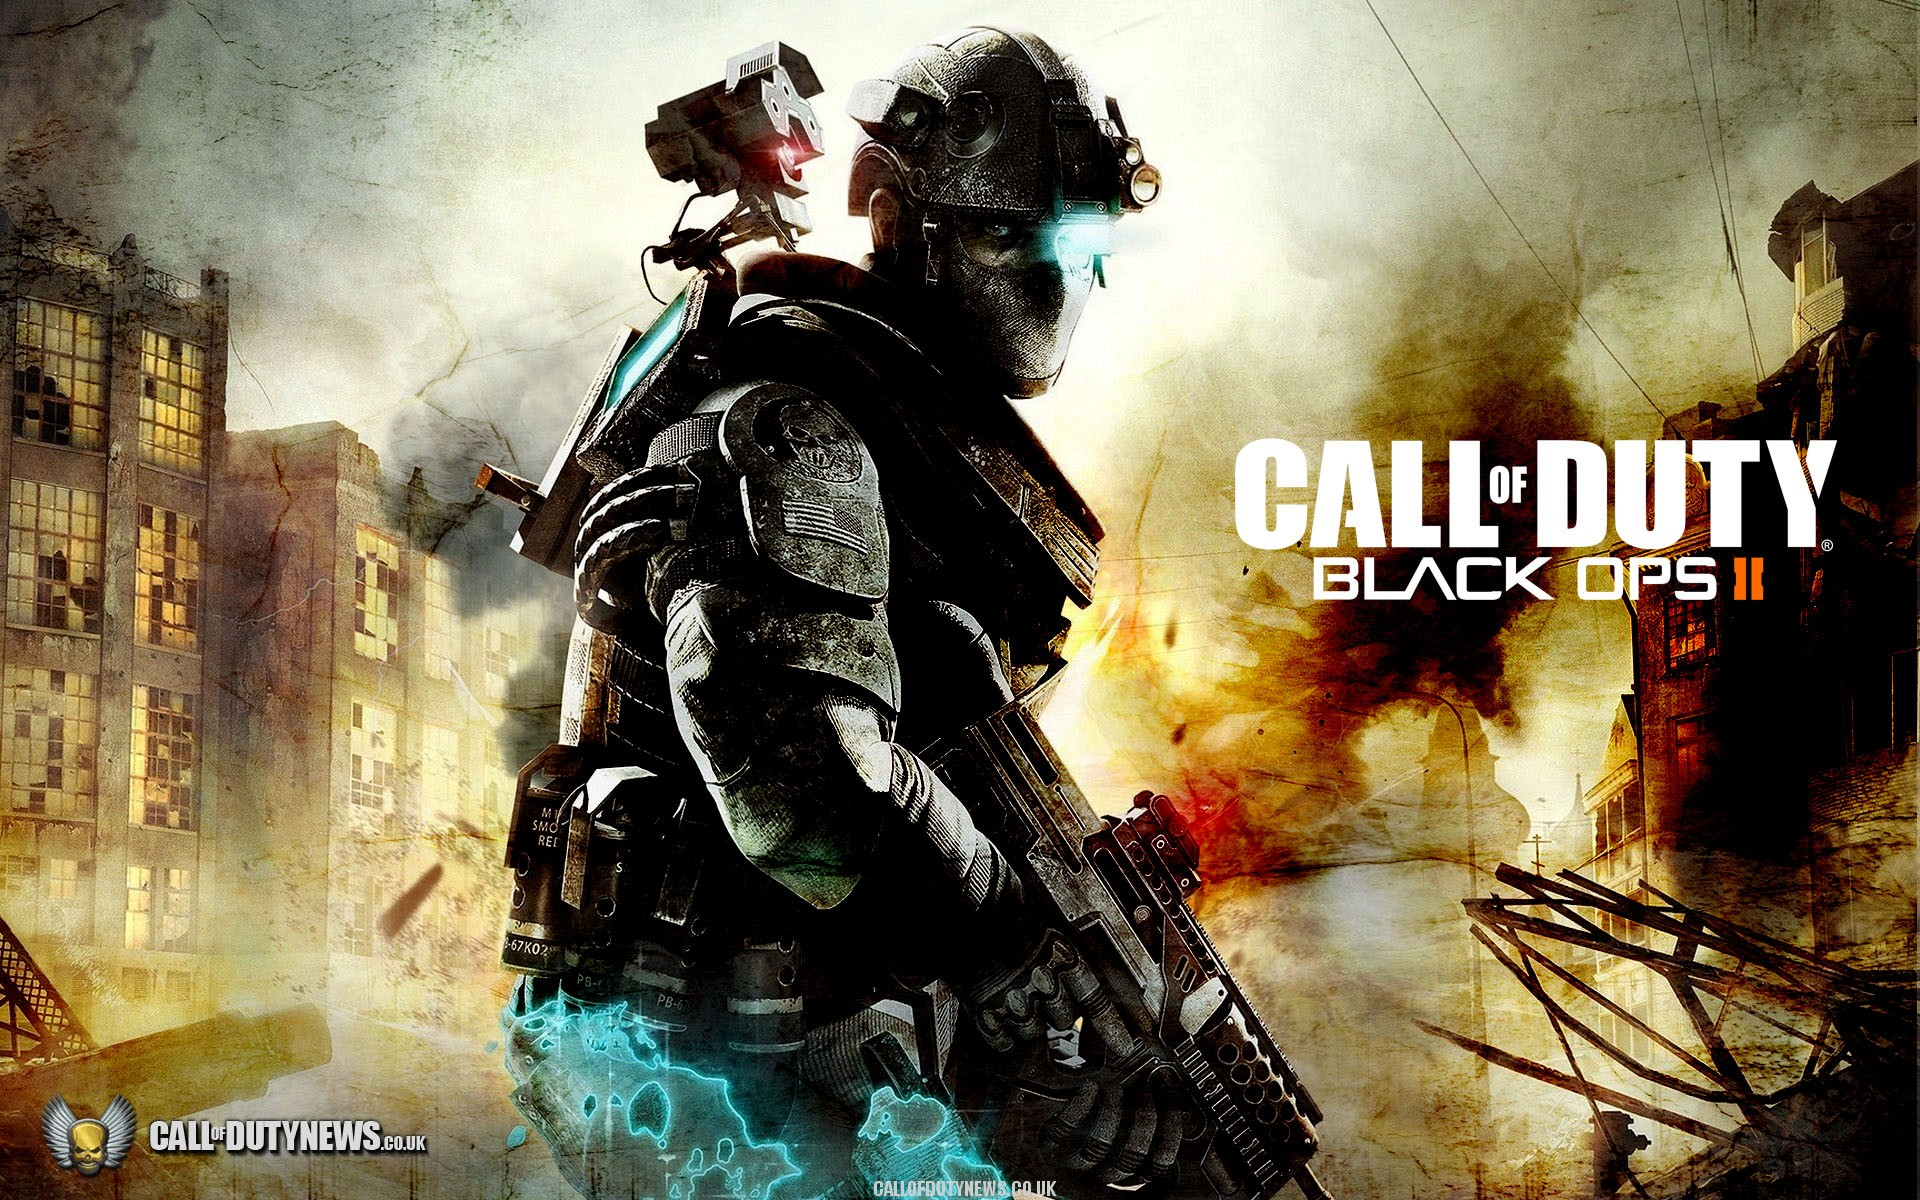 Call Of Duty Black Ops 2 Wallpaper 1920x1200 67340